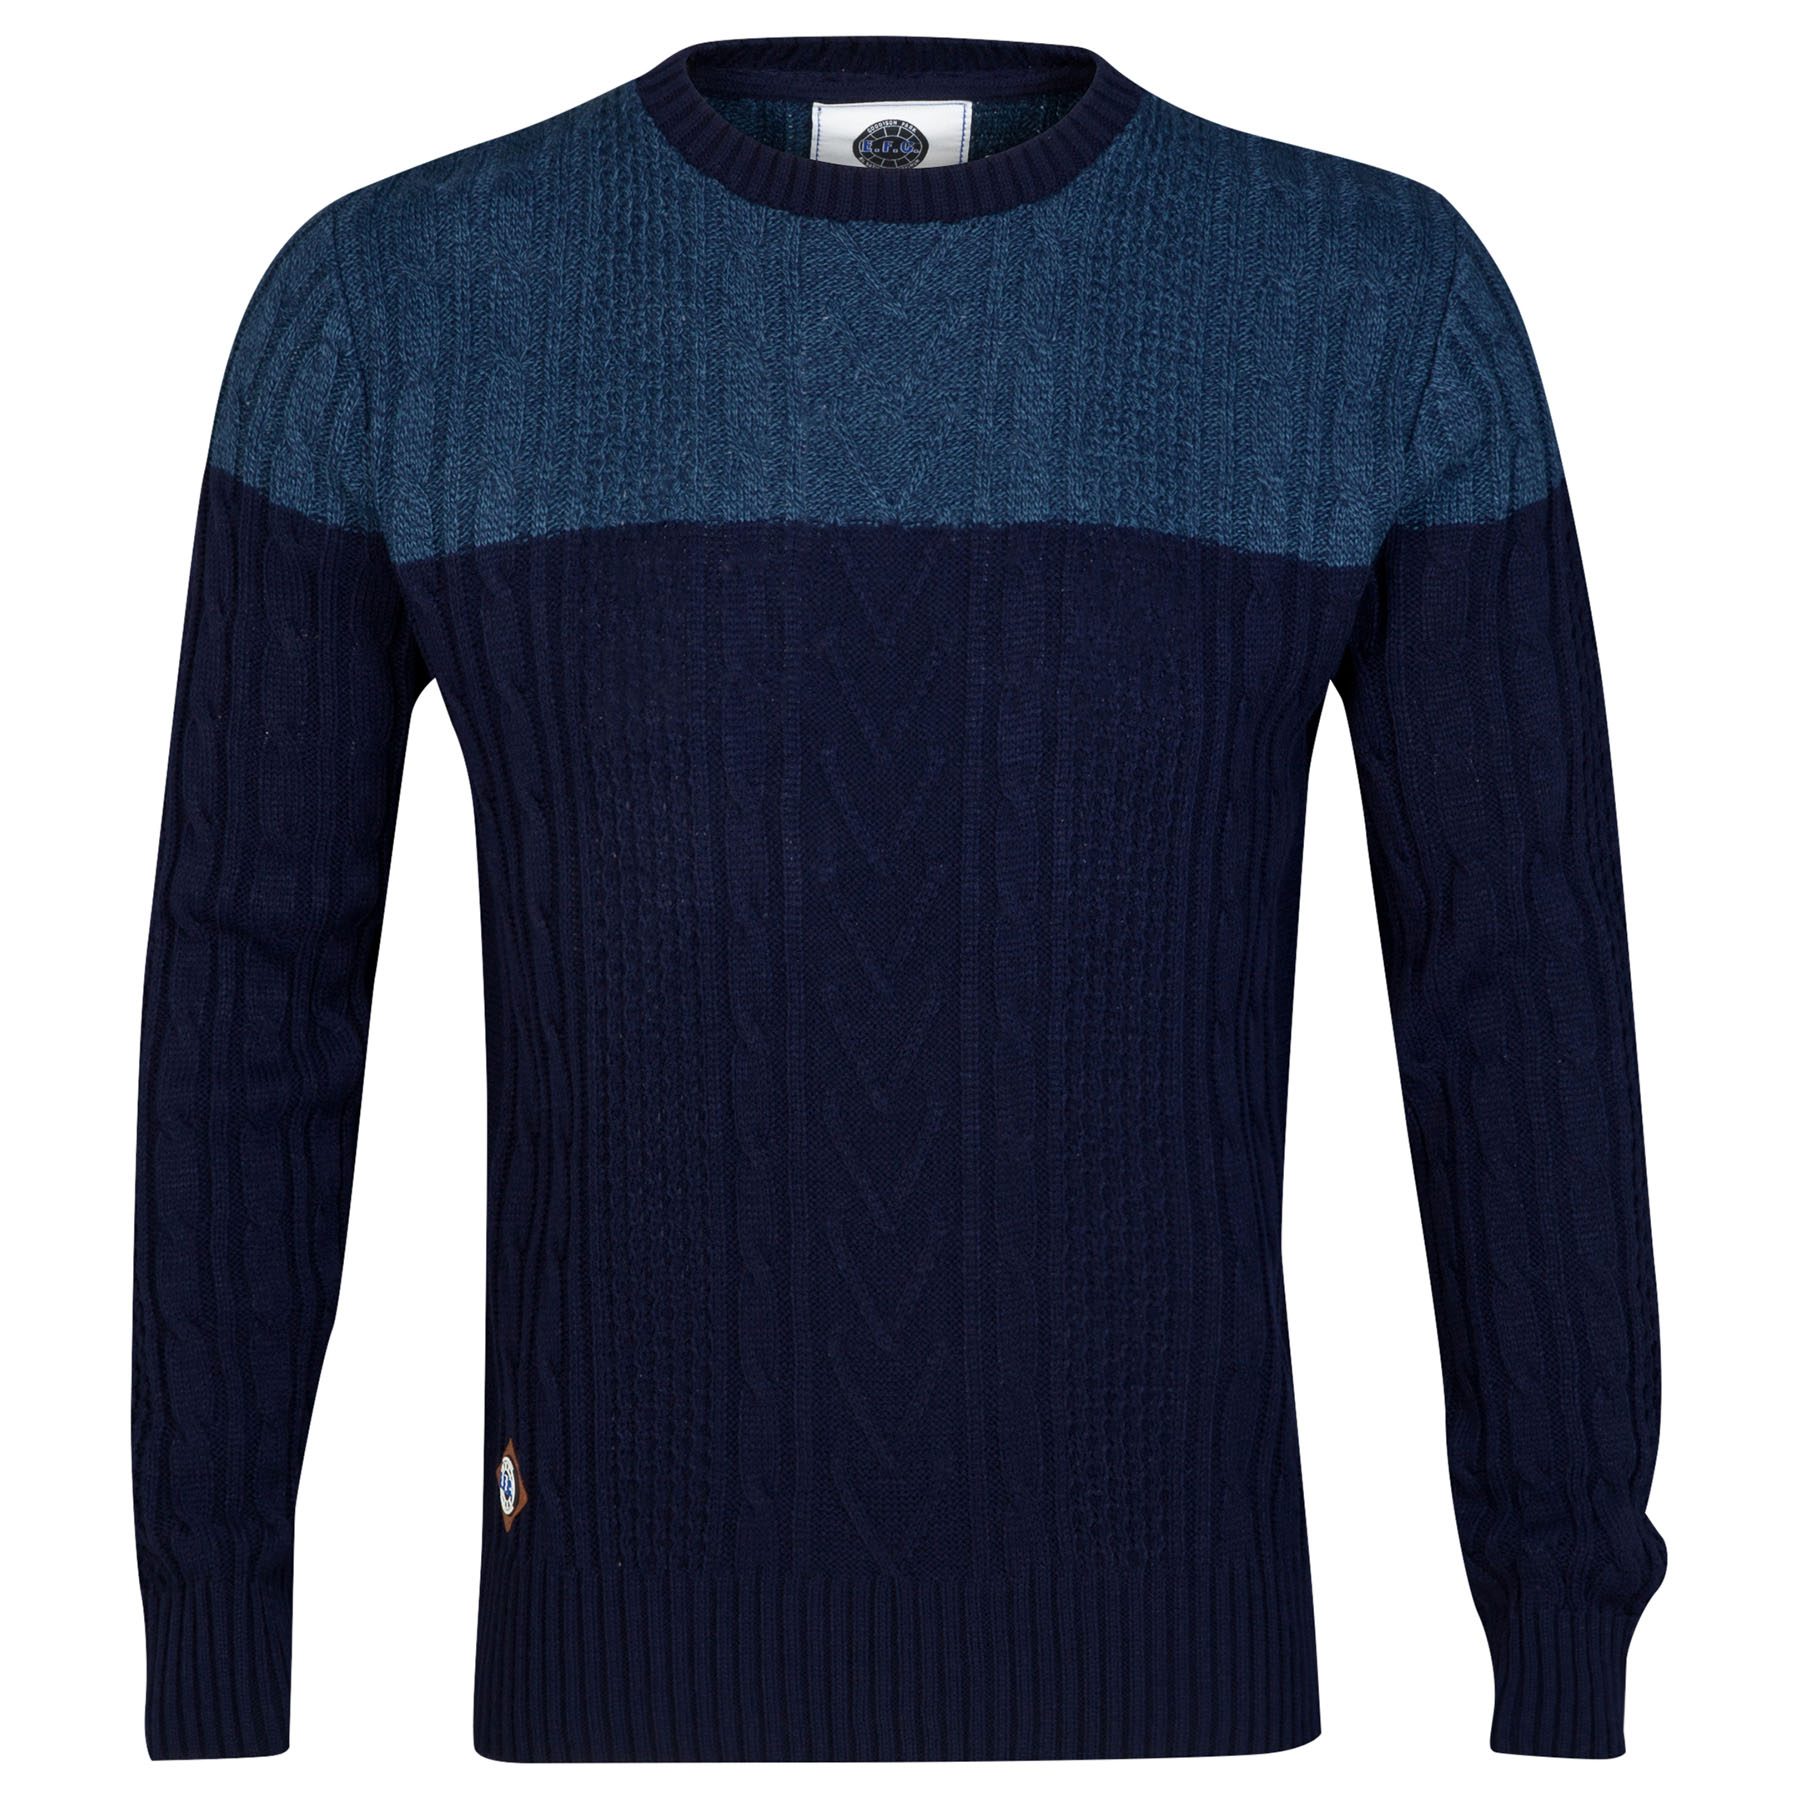 Everton Jumper - Navy/Grey - Mens